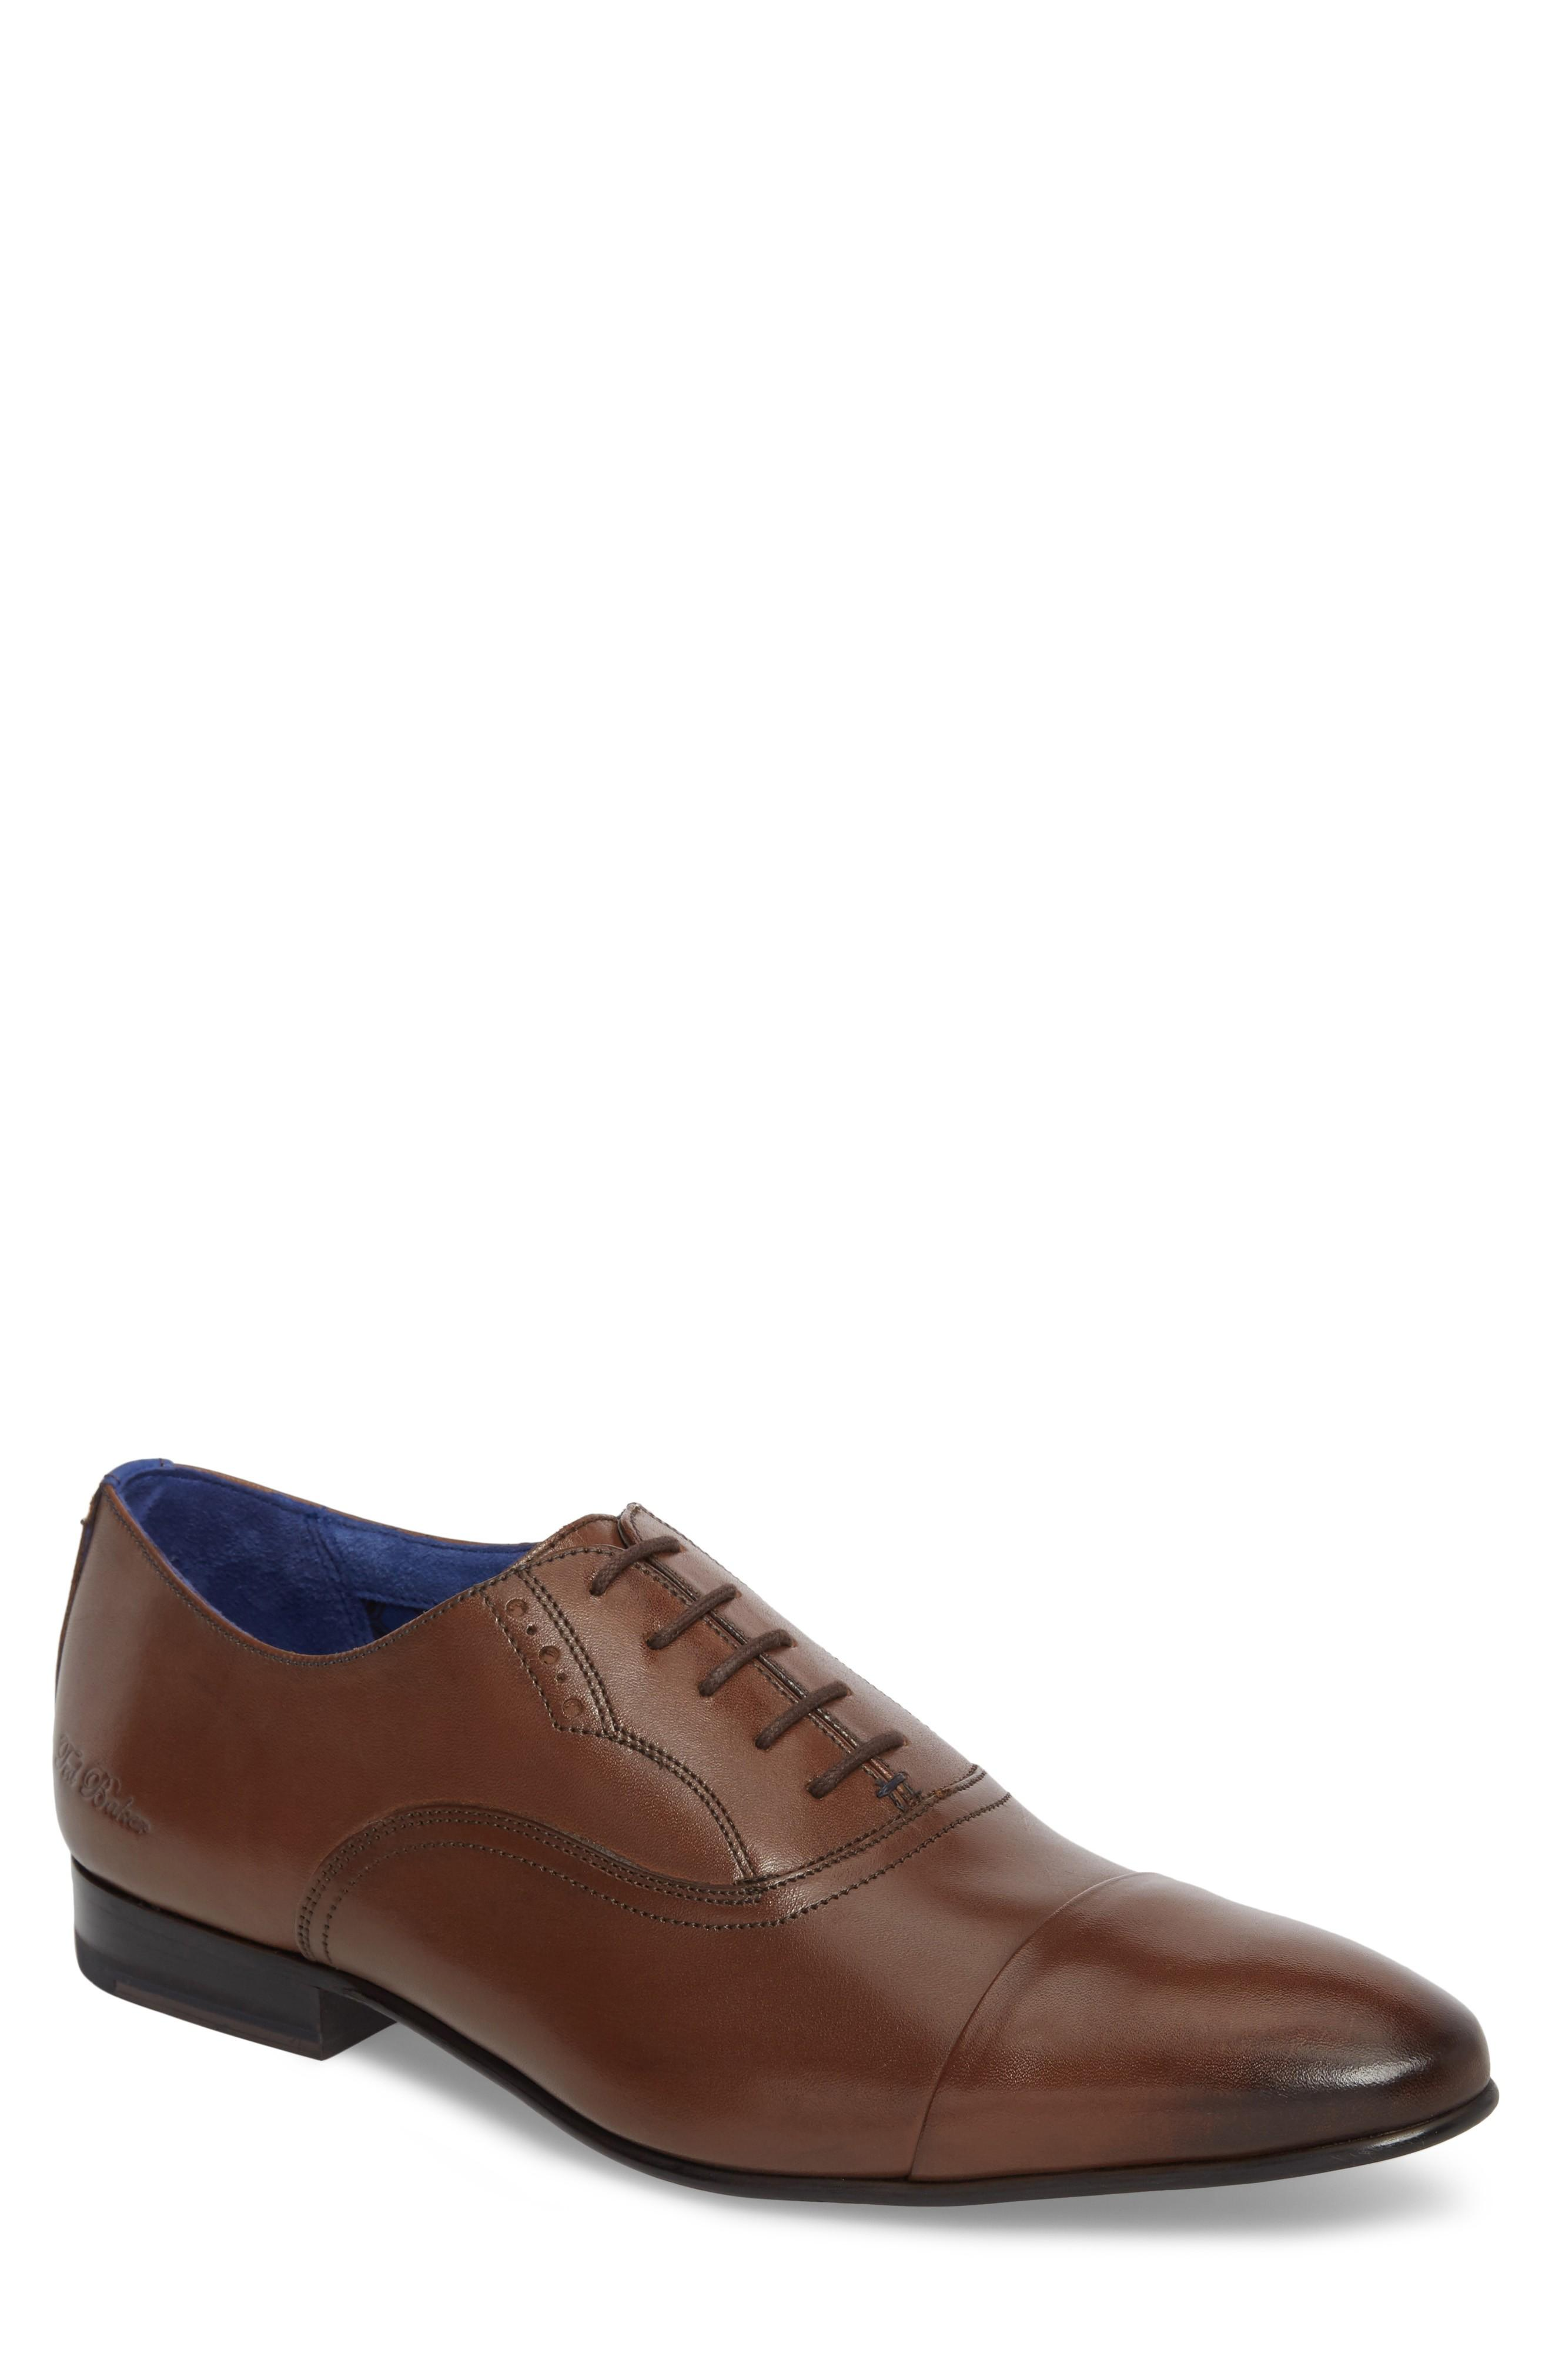 be784f7d1fd67d Ted Baker Murain Cap Toe Oxford In Brown Leather